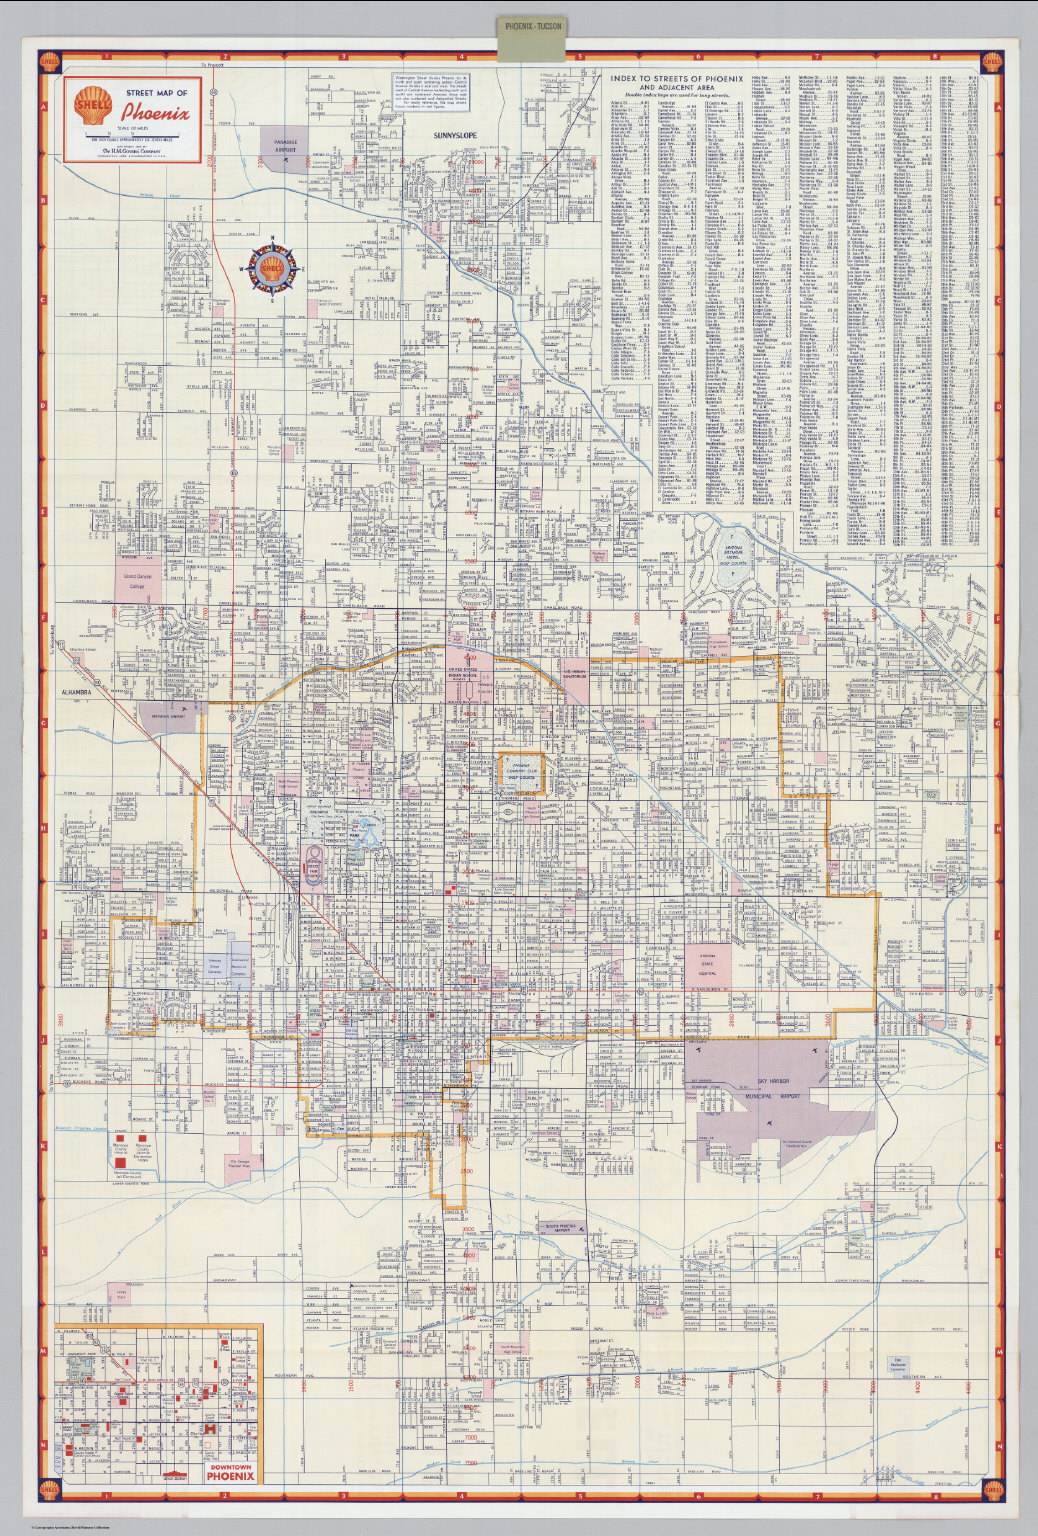 Shell Street Map of Phoenix David Rumsey Historical Map Collection